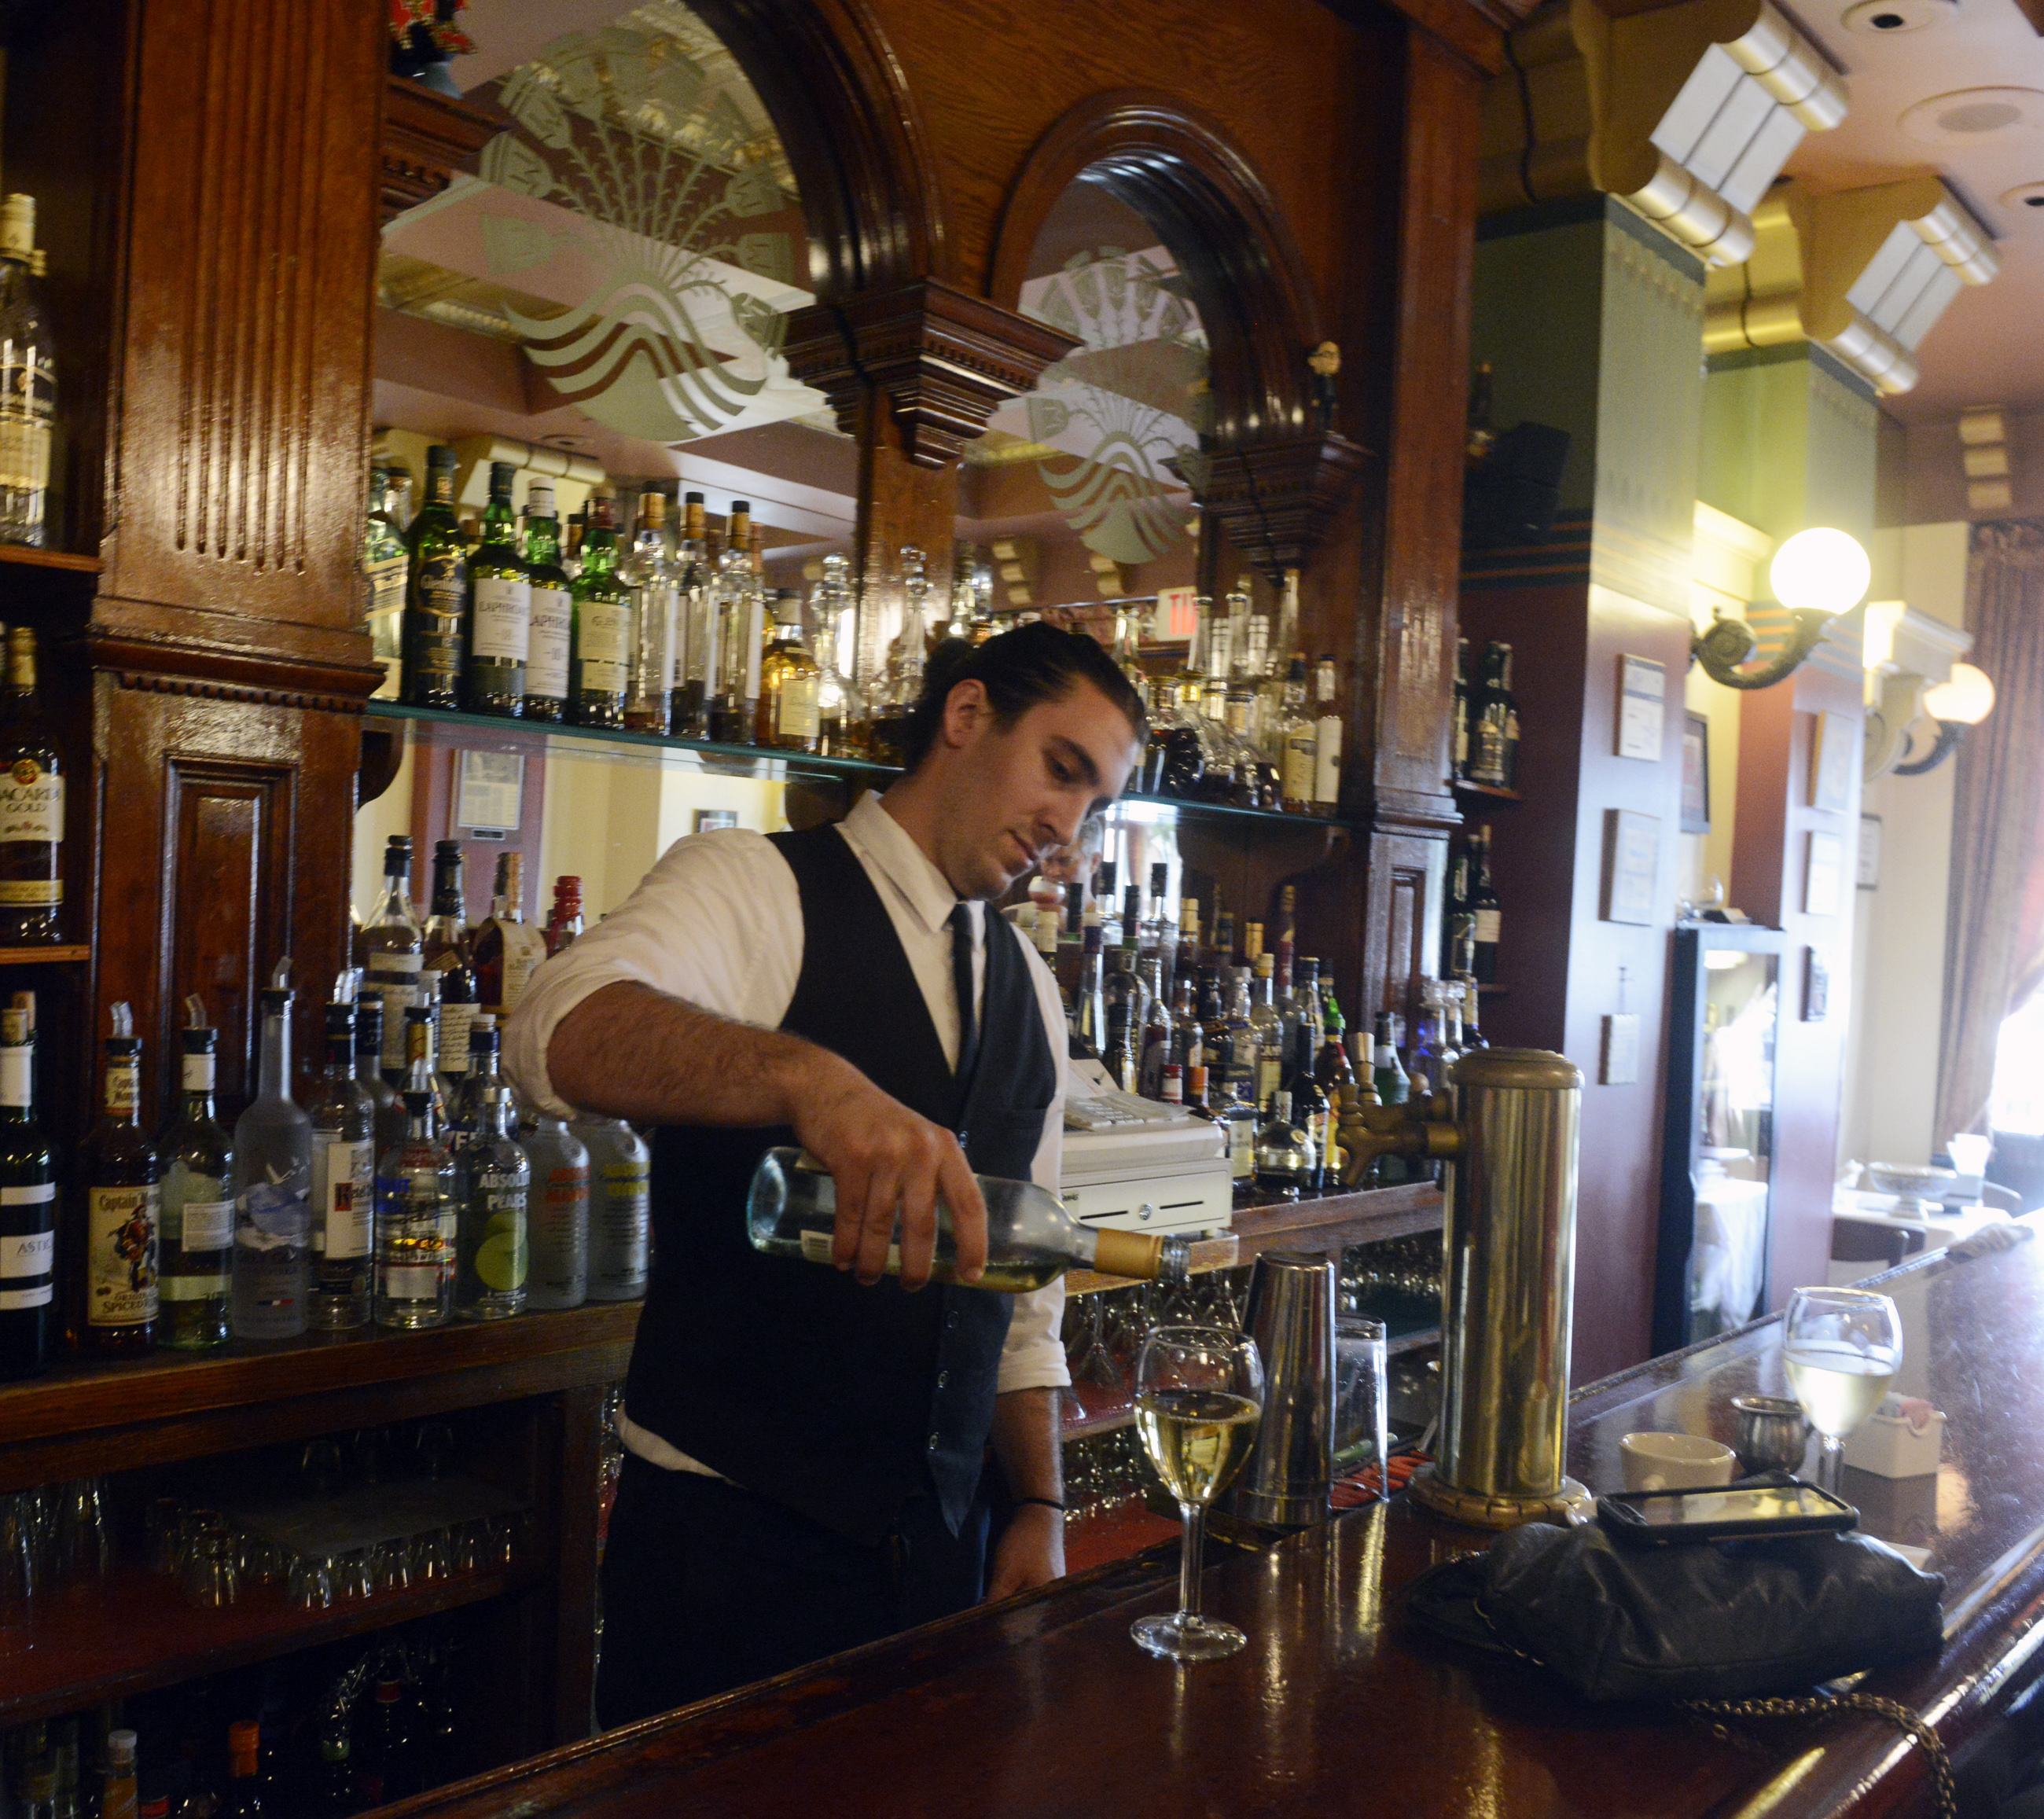 have a drink on me pittsburgh s best looking bars 20150617bwmallorcafood01 jpg